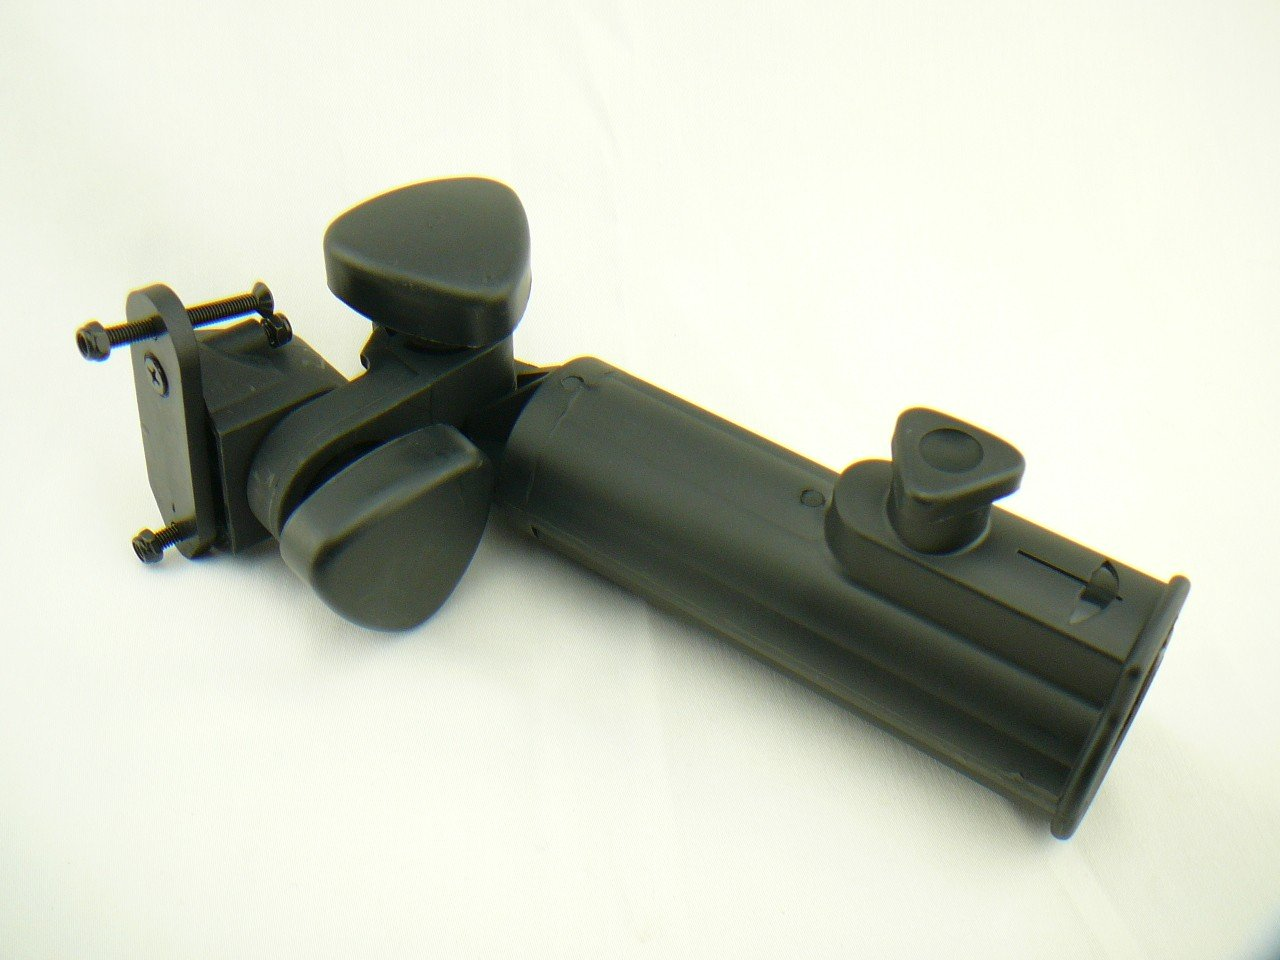 Umbrella Holder for Powakaddy freeway analogue golf trolly